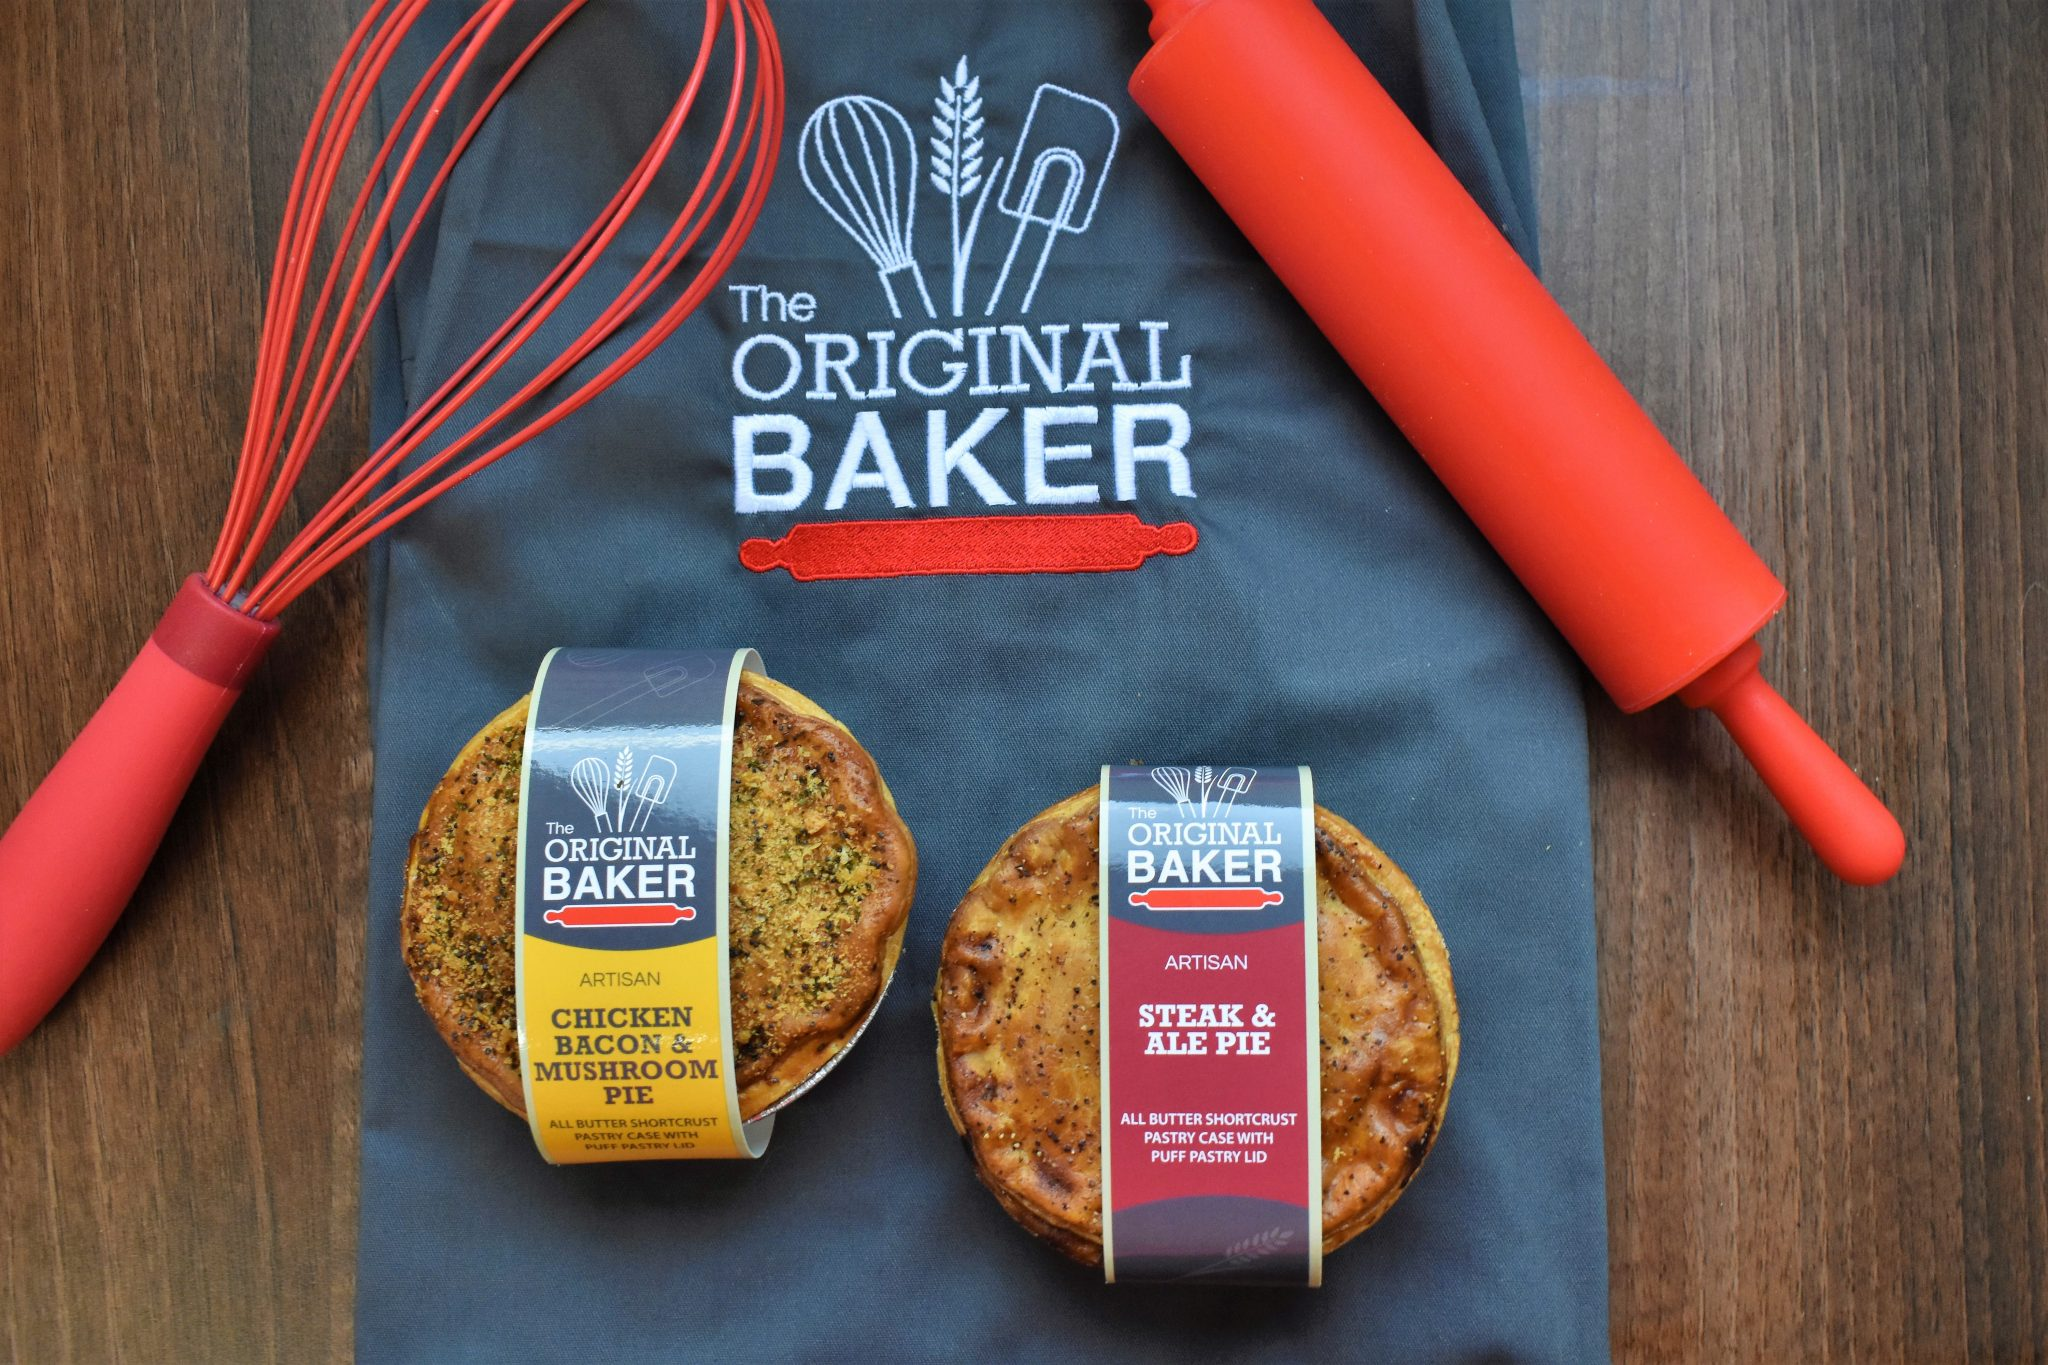 The Original Baker makes a range of pies, available at Hunters of Helmsley